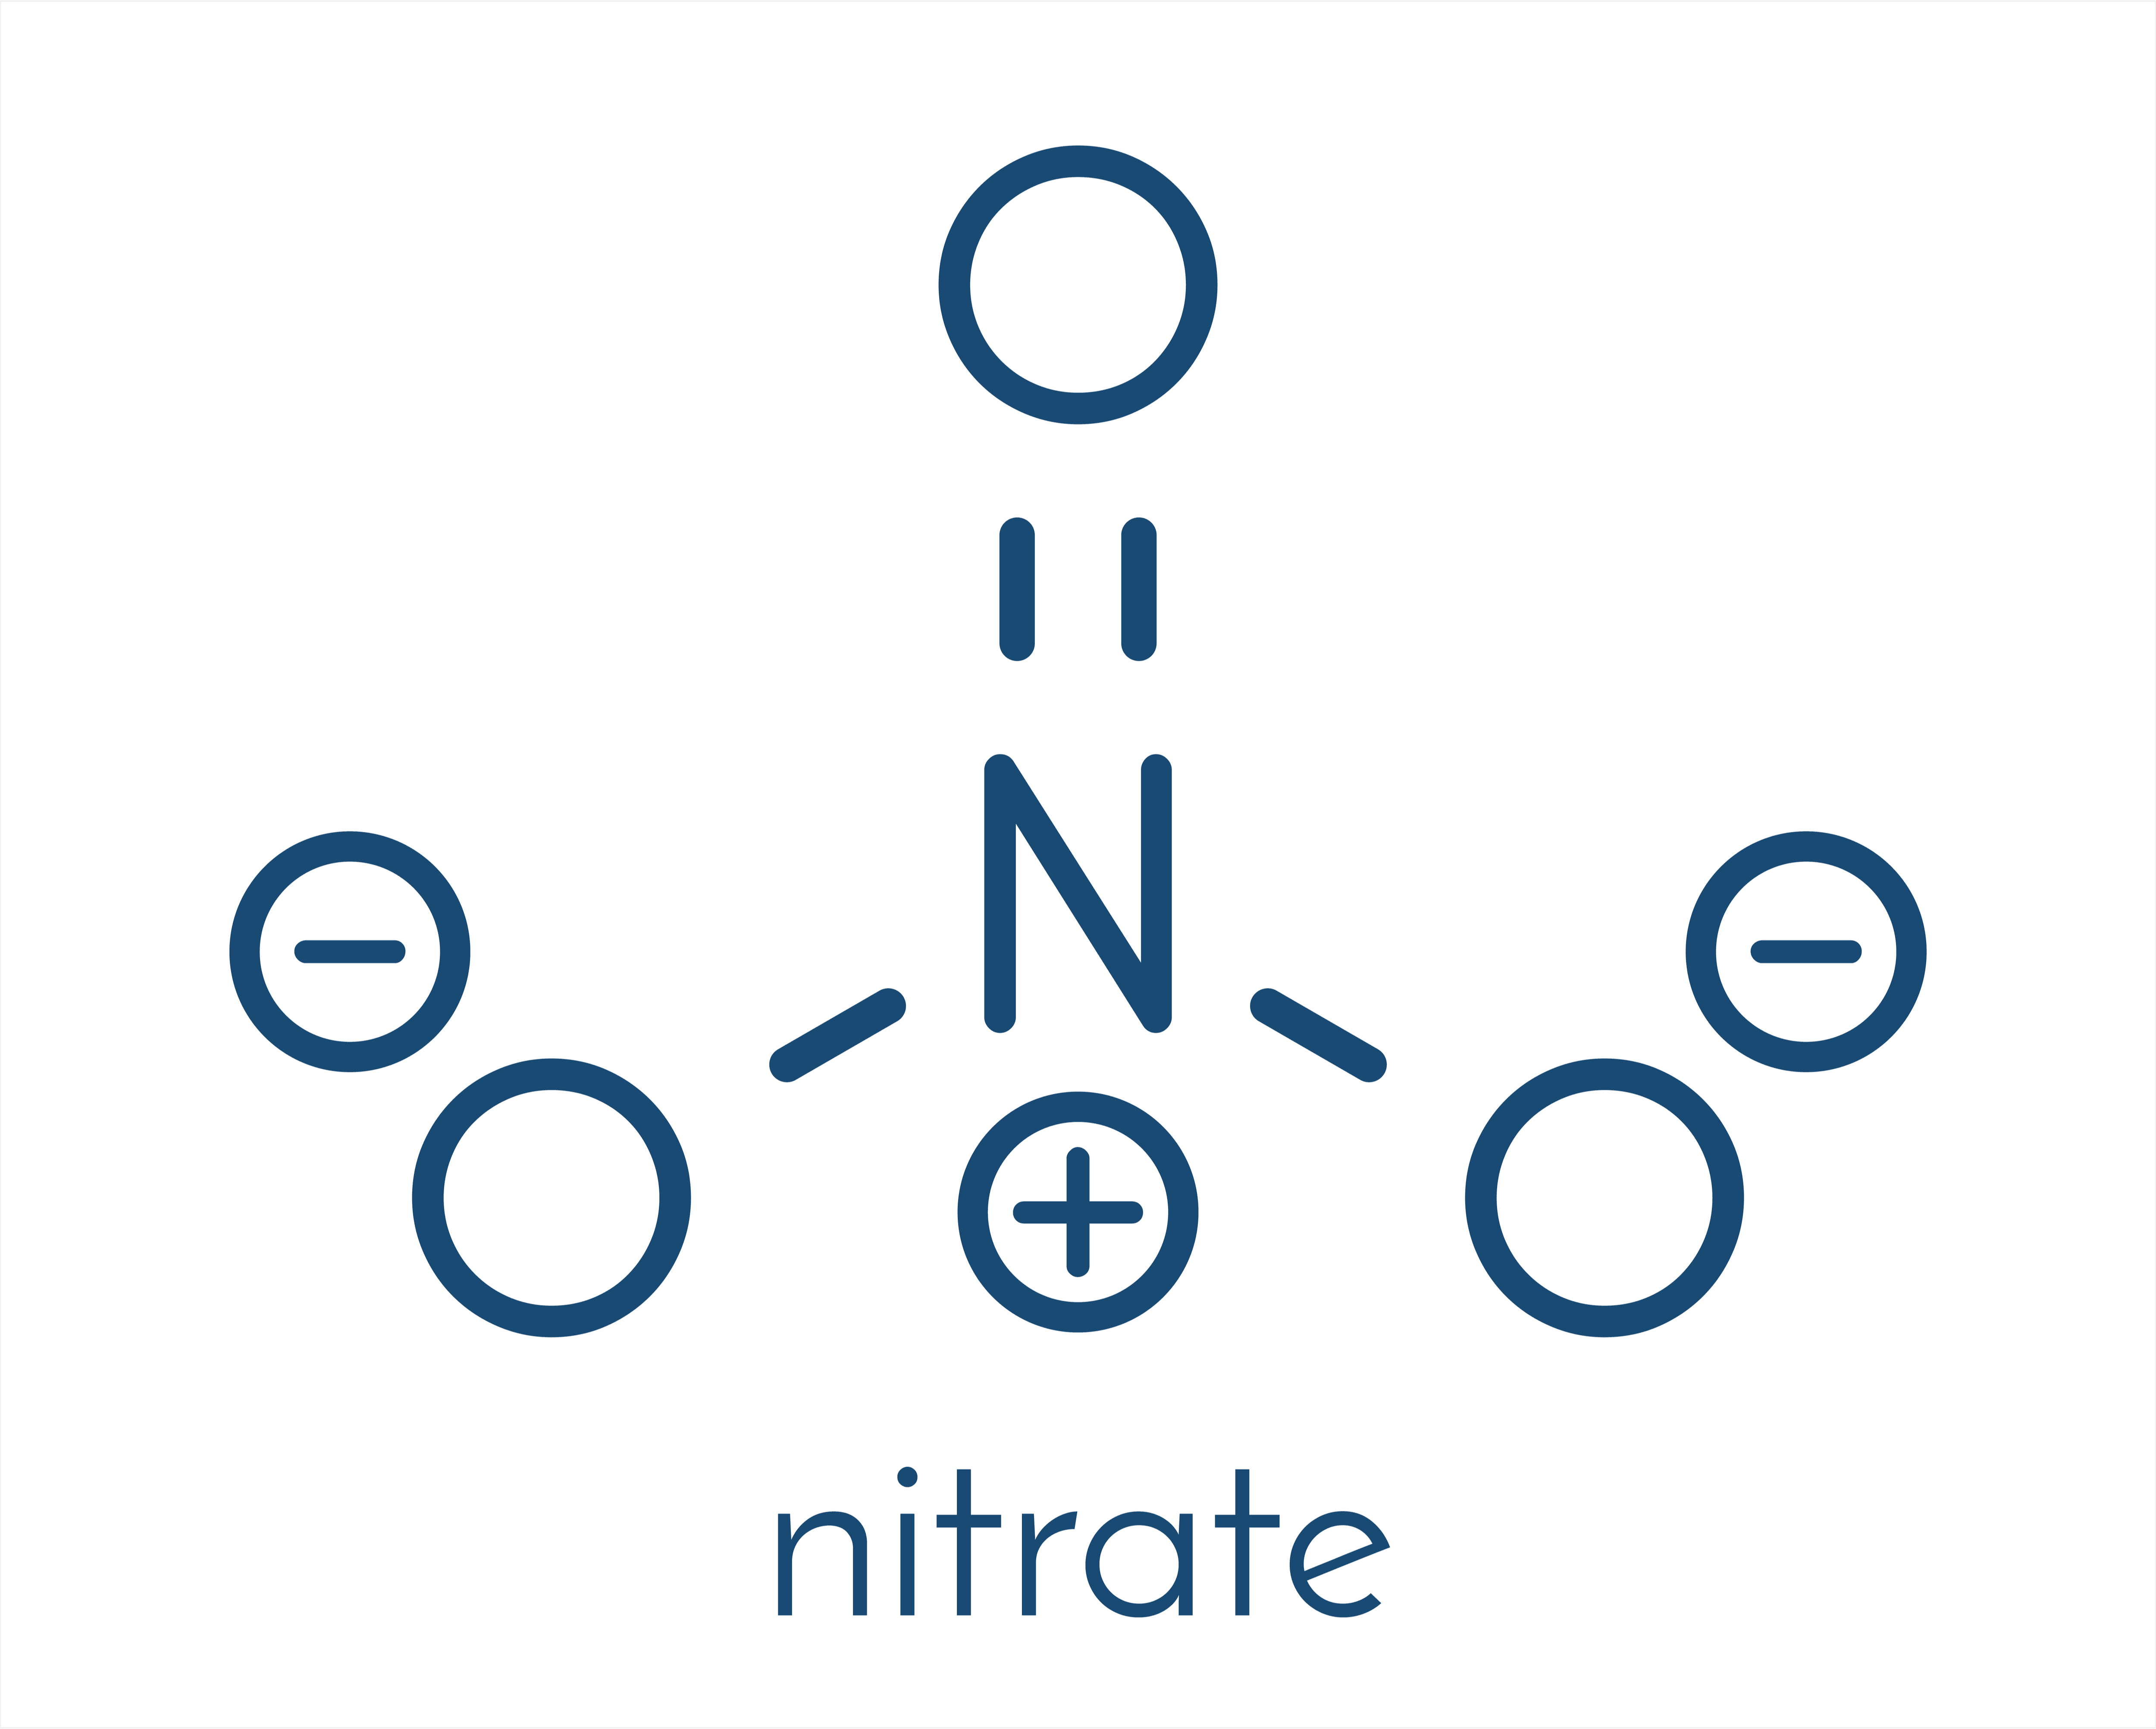 Chemical structure of nitrate